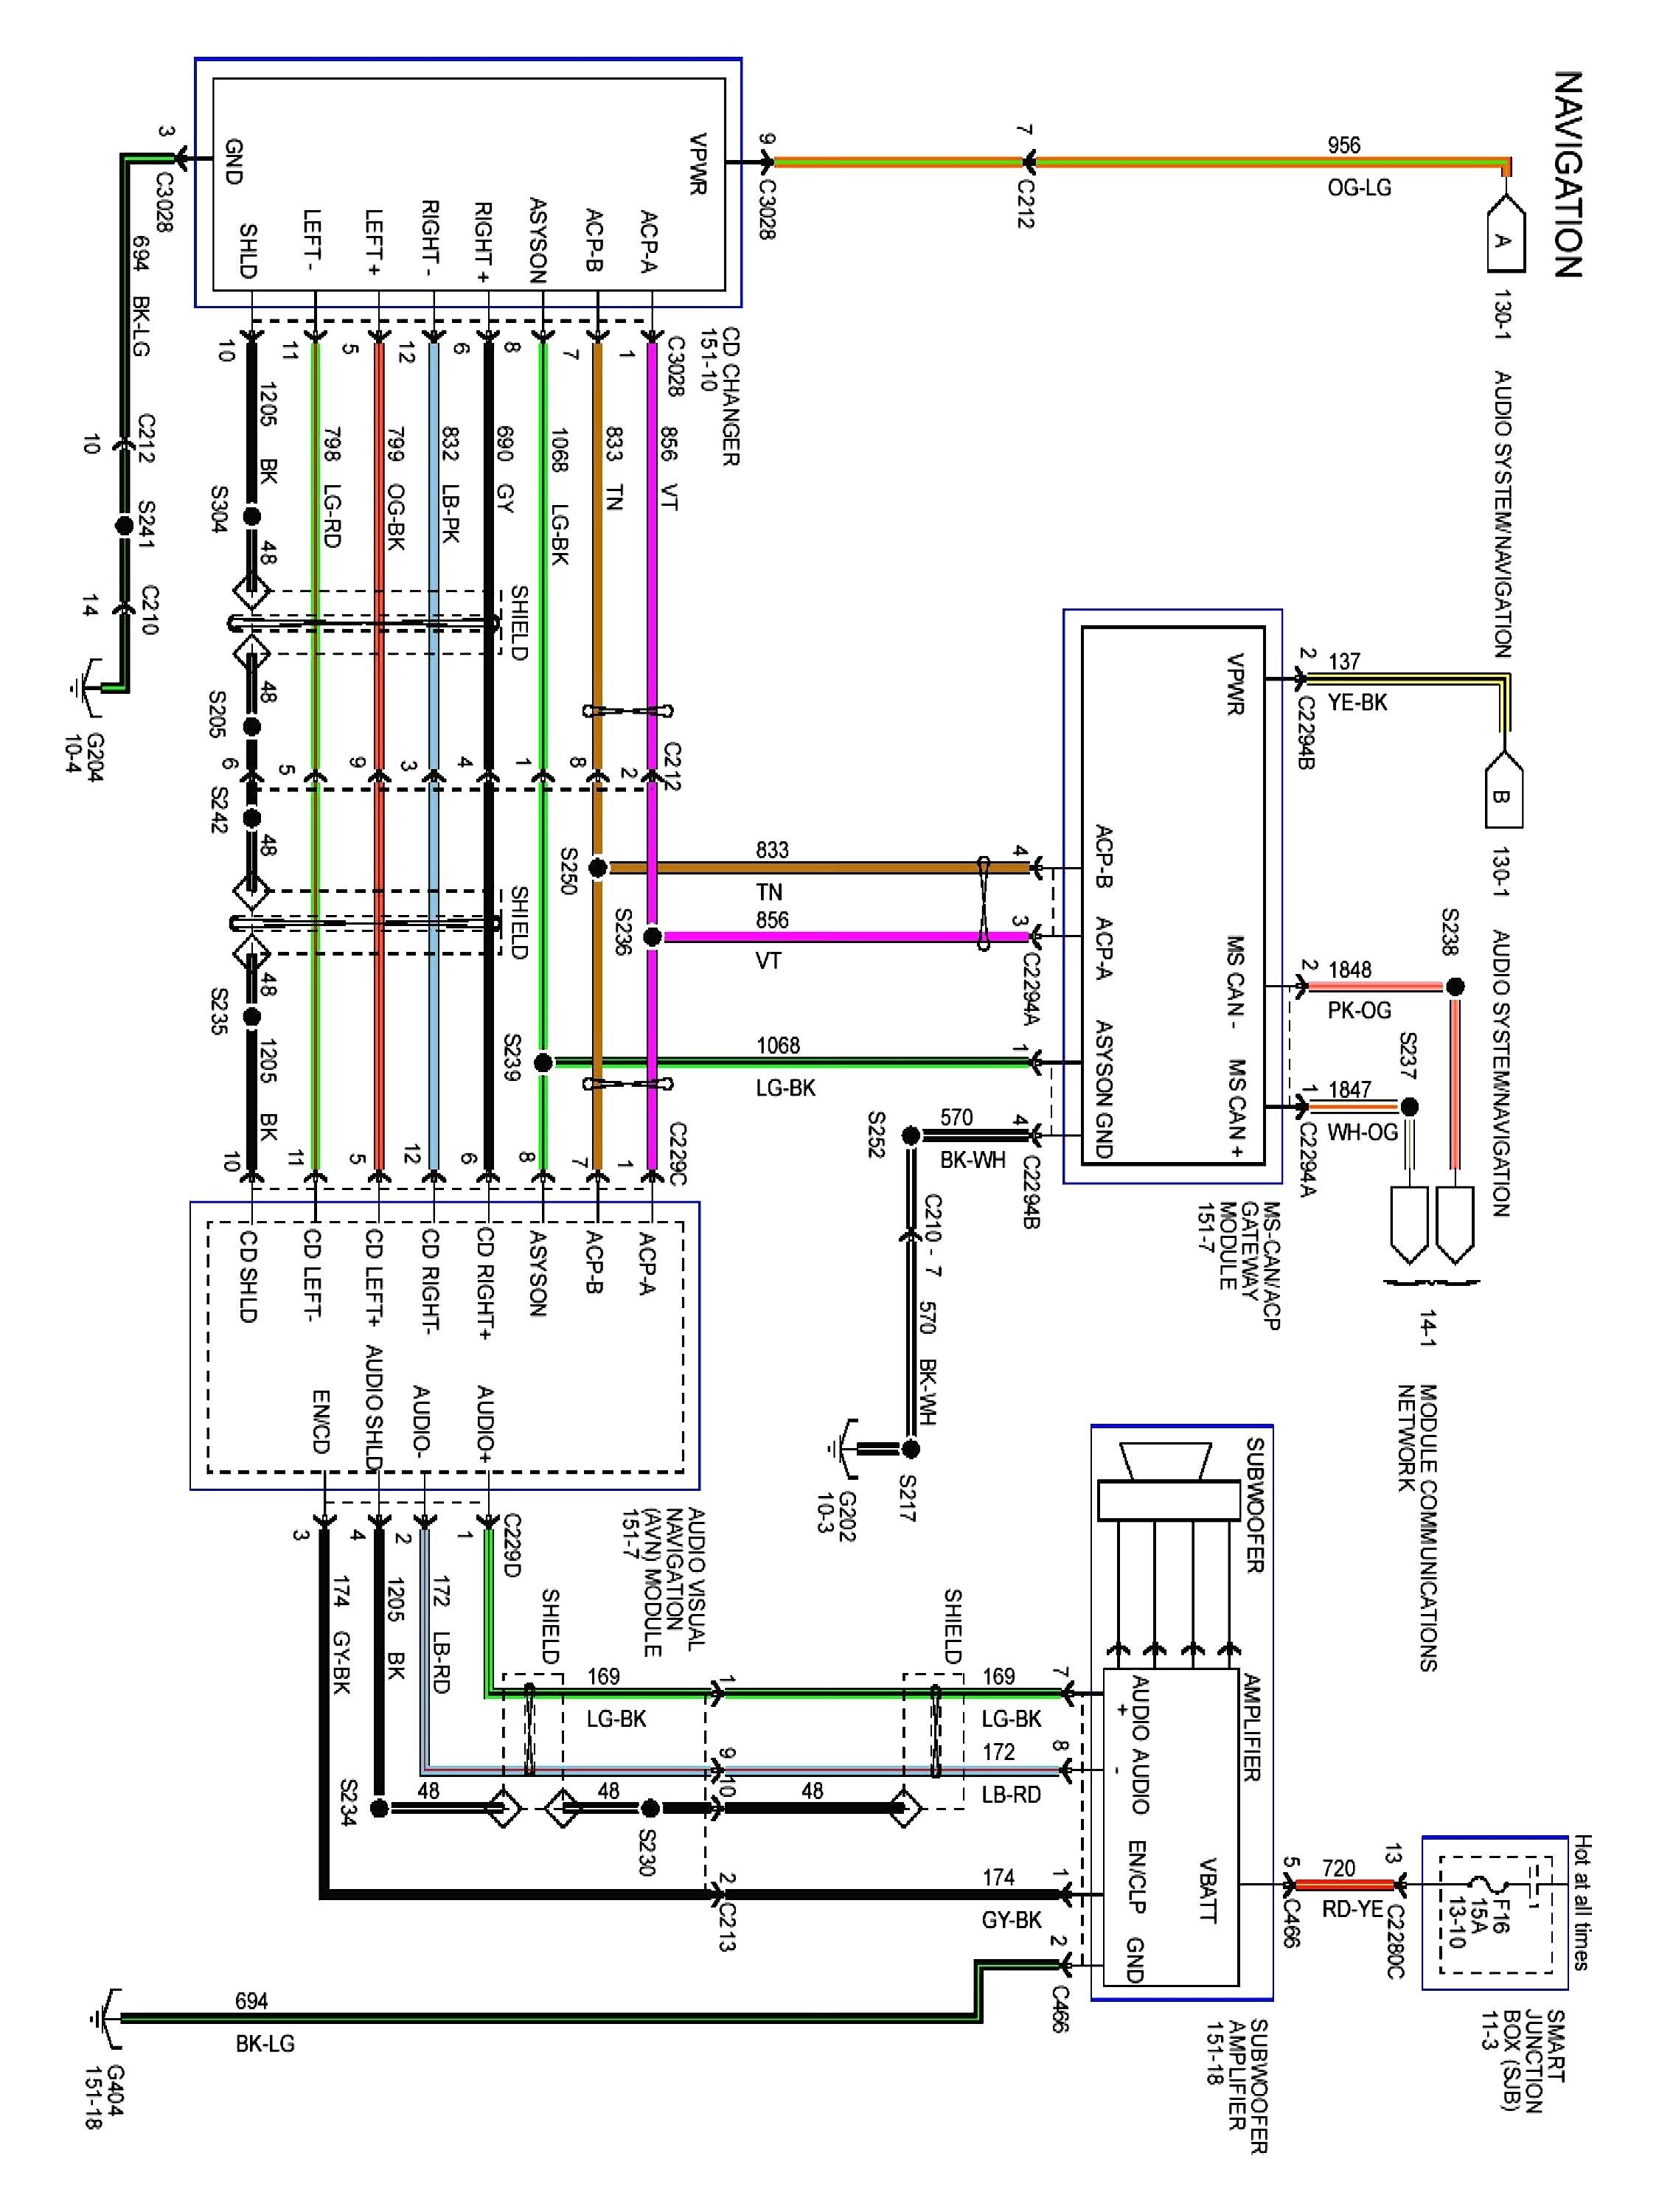 [DIAGRAM_5UK]  New 2011 Dodge Ram 1500 Radio Wiring Diagram #diagram #diagramsample  #diagramtemplate #wiringdiagra… | Ford expedition, Electrical wiring diagram,  Ford focus engine | Wiring Diagram For Dodge Ram 1500 Radio |  | Pinterest